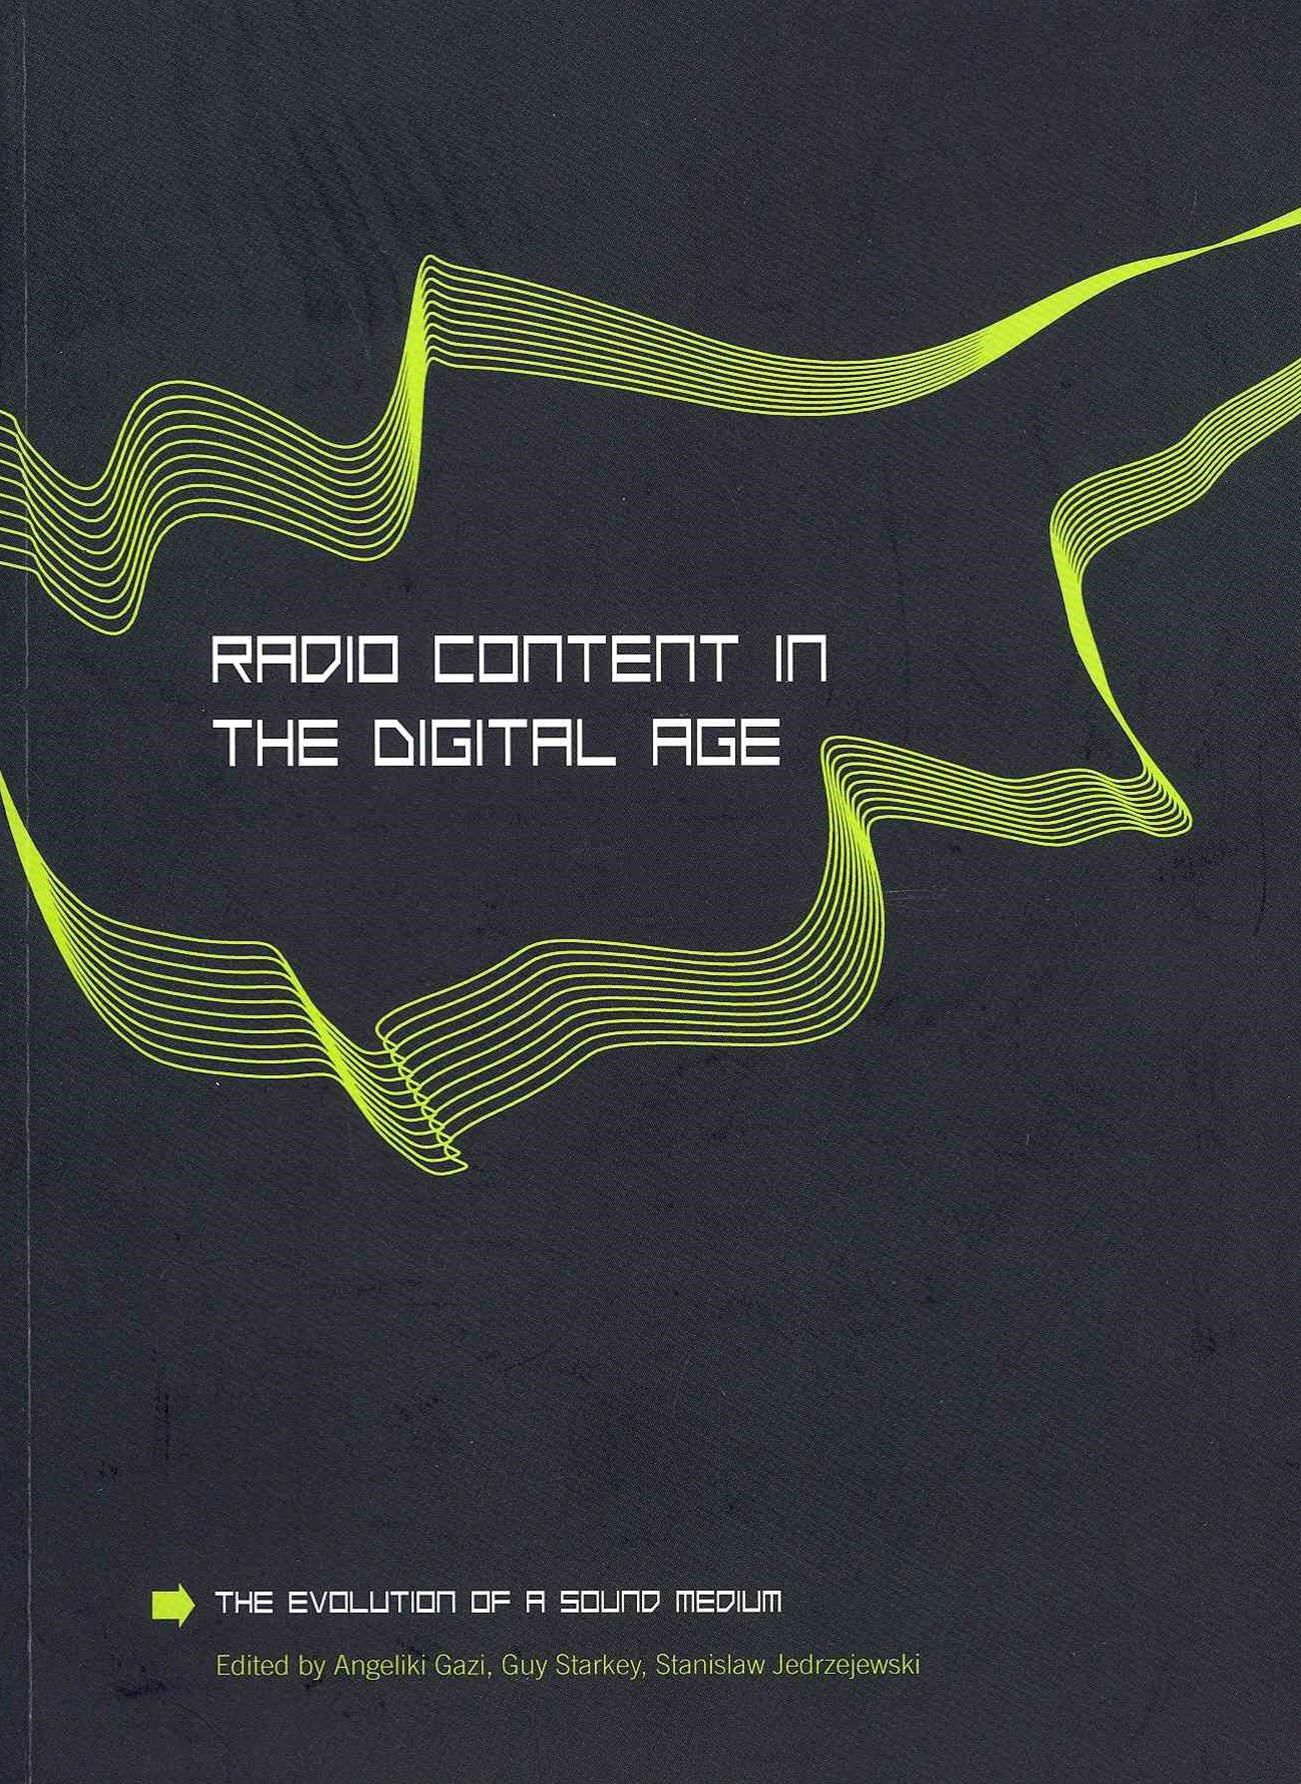 Radio Content in the Digital Age